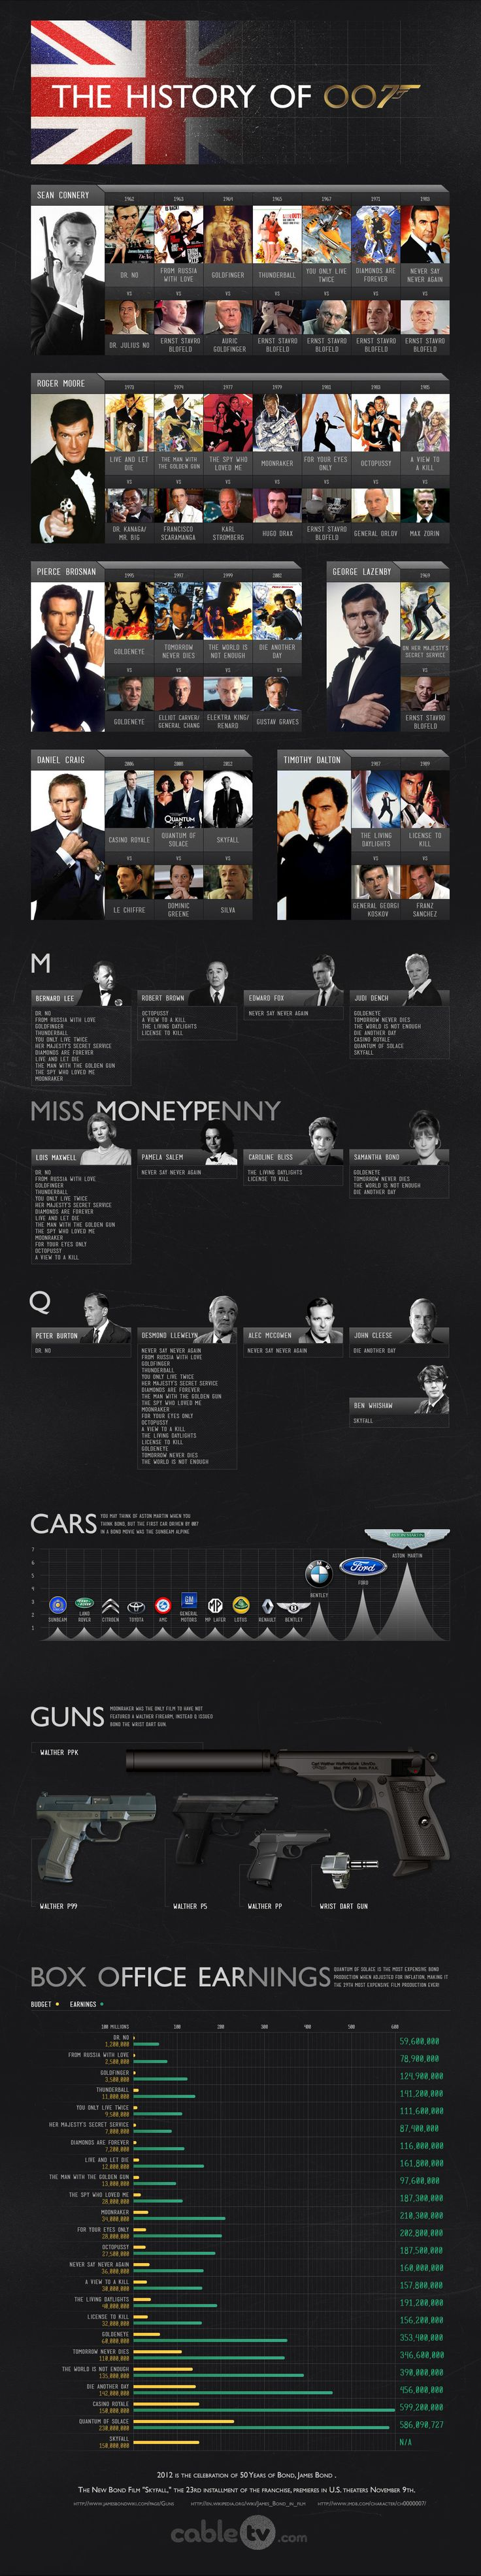 Follow the history of James Bond through the years. Explore the series changes in actors, villains, guns and cars with this 007 infographic from CableTV.com!